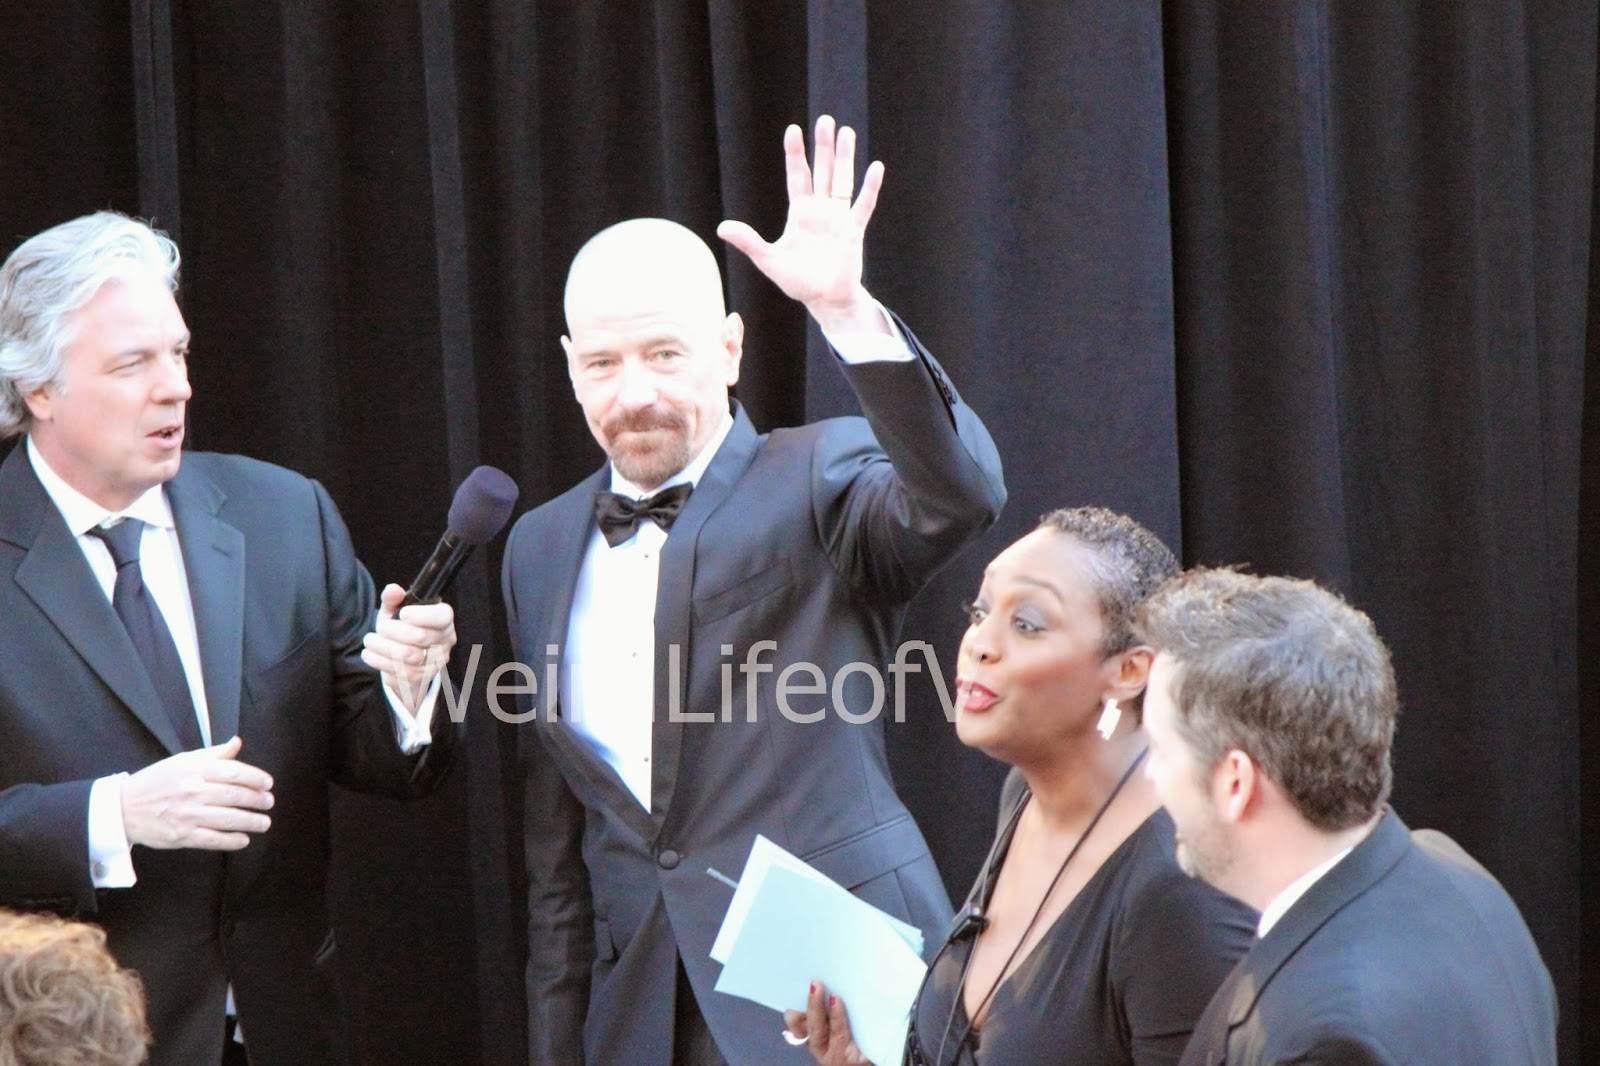 Bryan Cranston waving to the fans while being interviewed by Chris Connelly at the 2013 Academy Awards